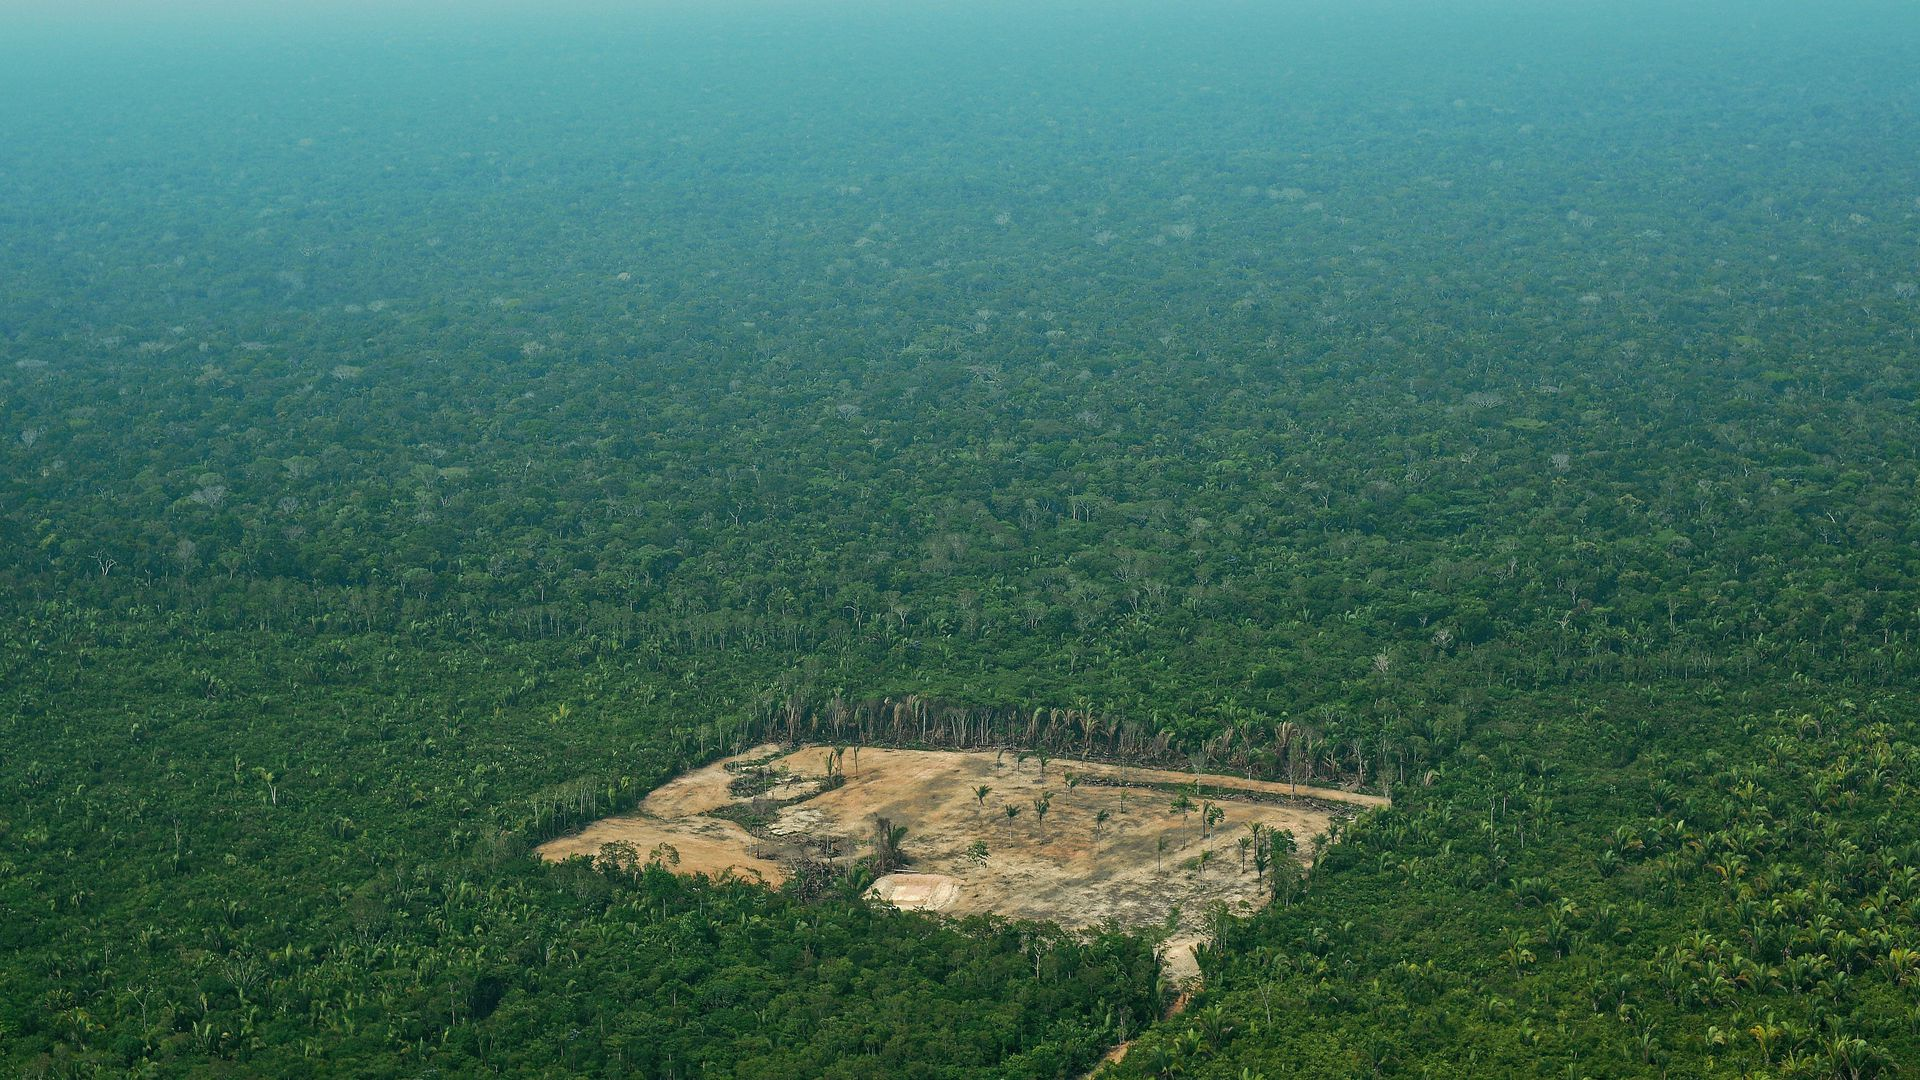 Aerial view of deforestation in the Western Amazon region of Brazil in September 2017.